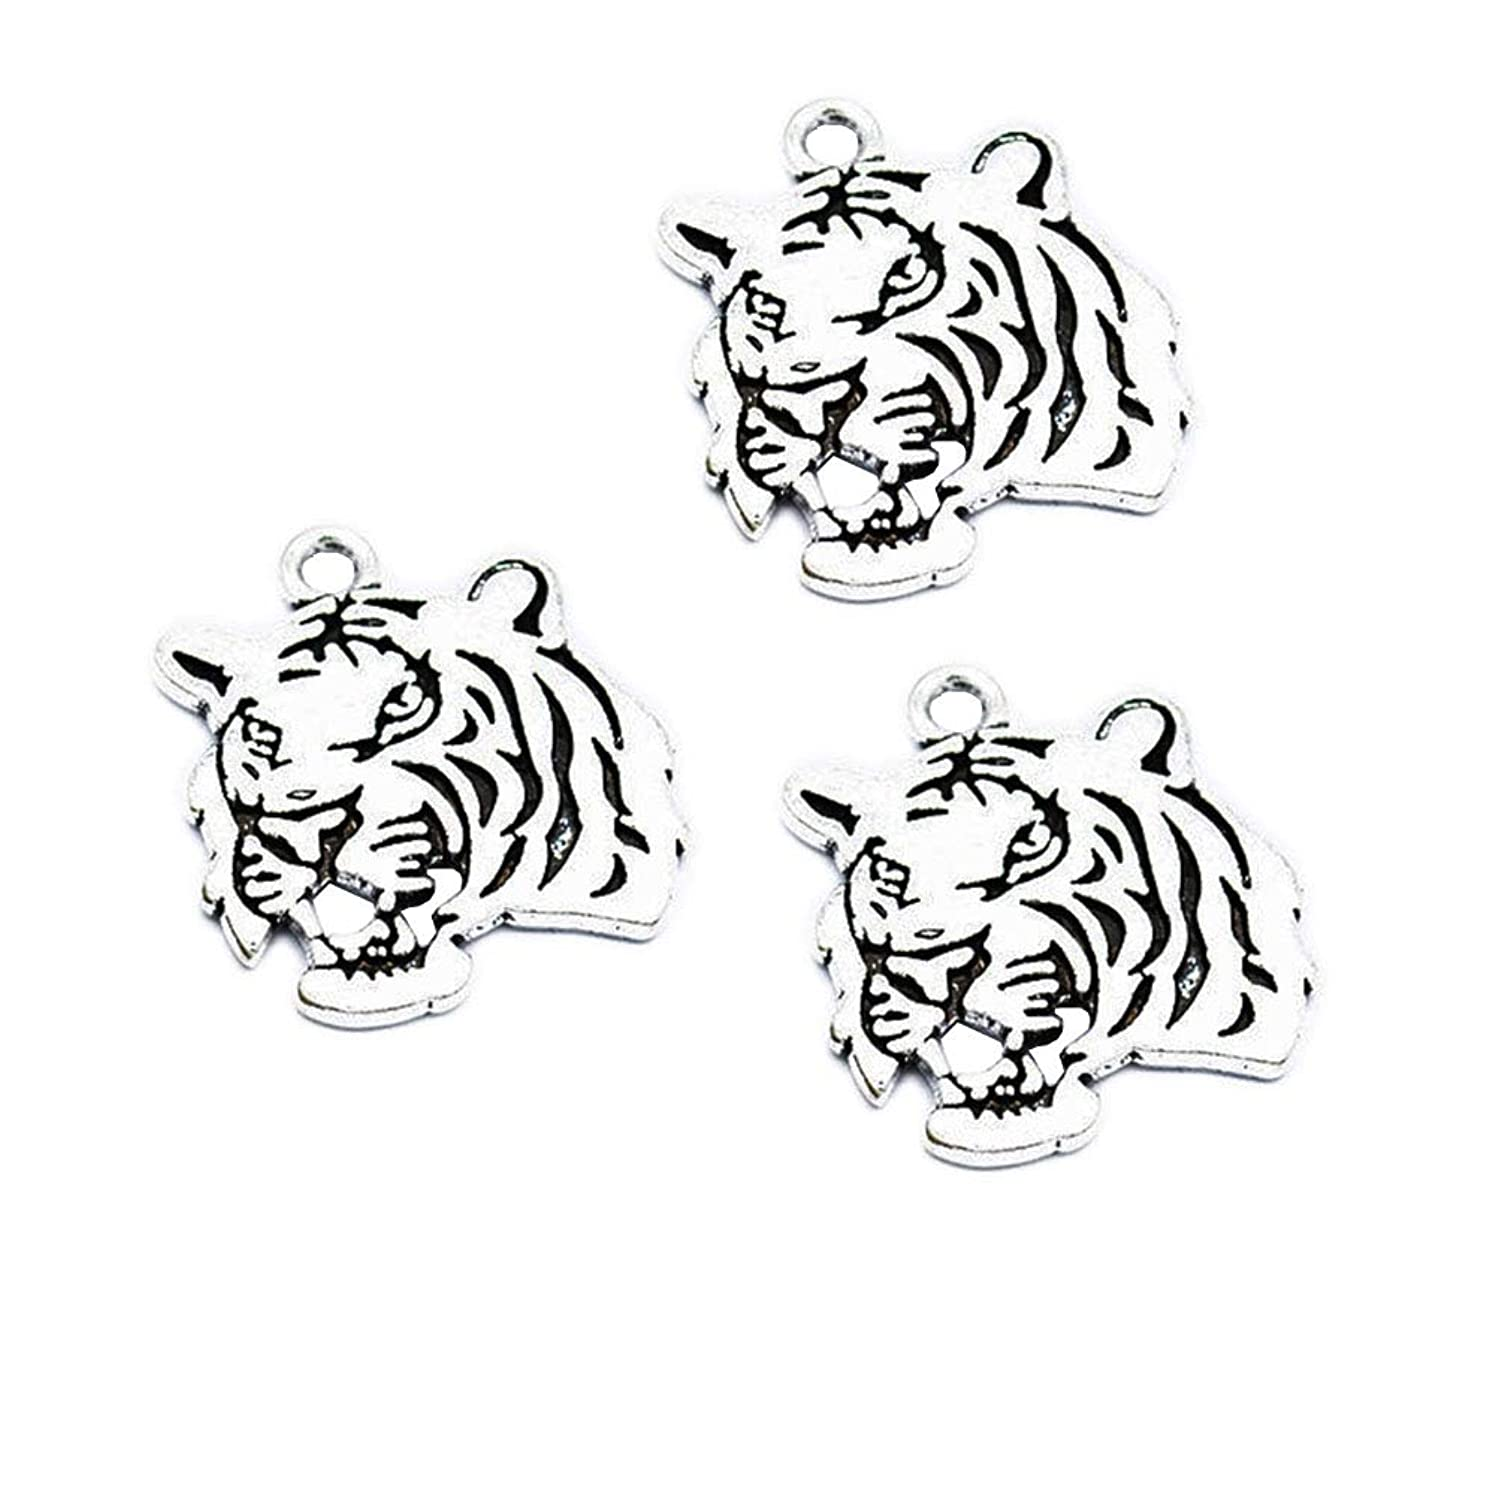 30pcs Vintage Antique Silver Alloy Animal Tiger Head Charms Pendant Jewelry Findings for Jewelry Making Necklace Bracelet DIY 27x24mm (30pcs Tiger)